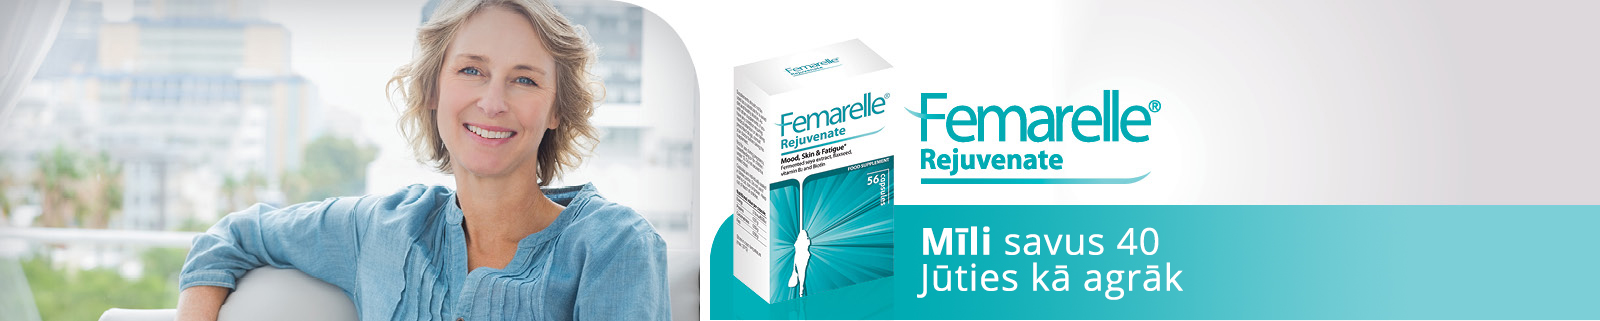 femarelle-rejuvenate-lv